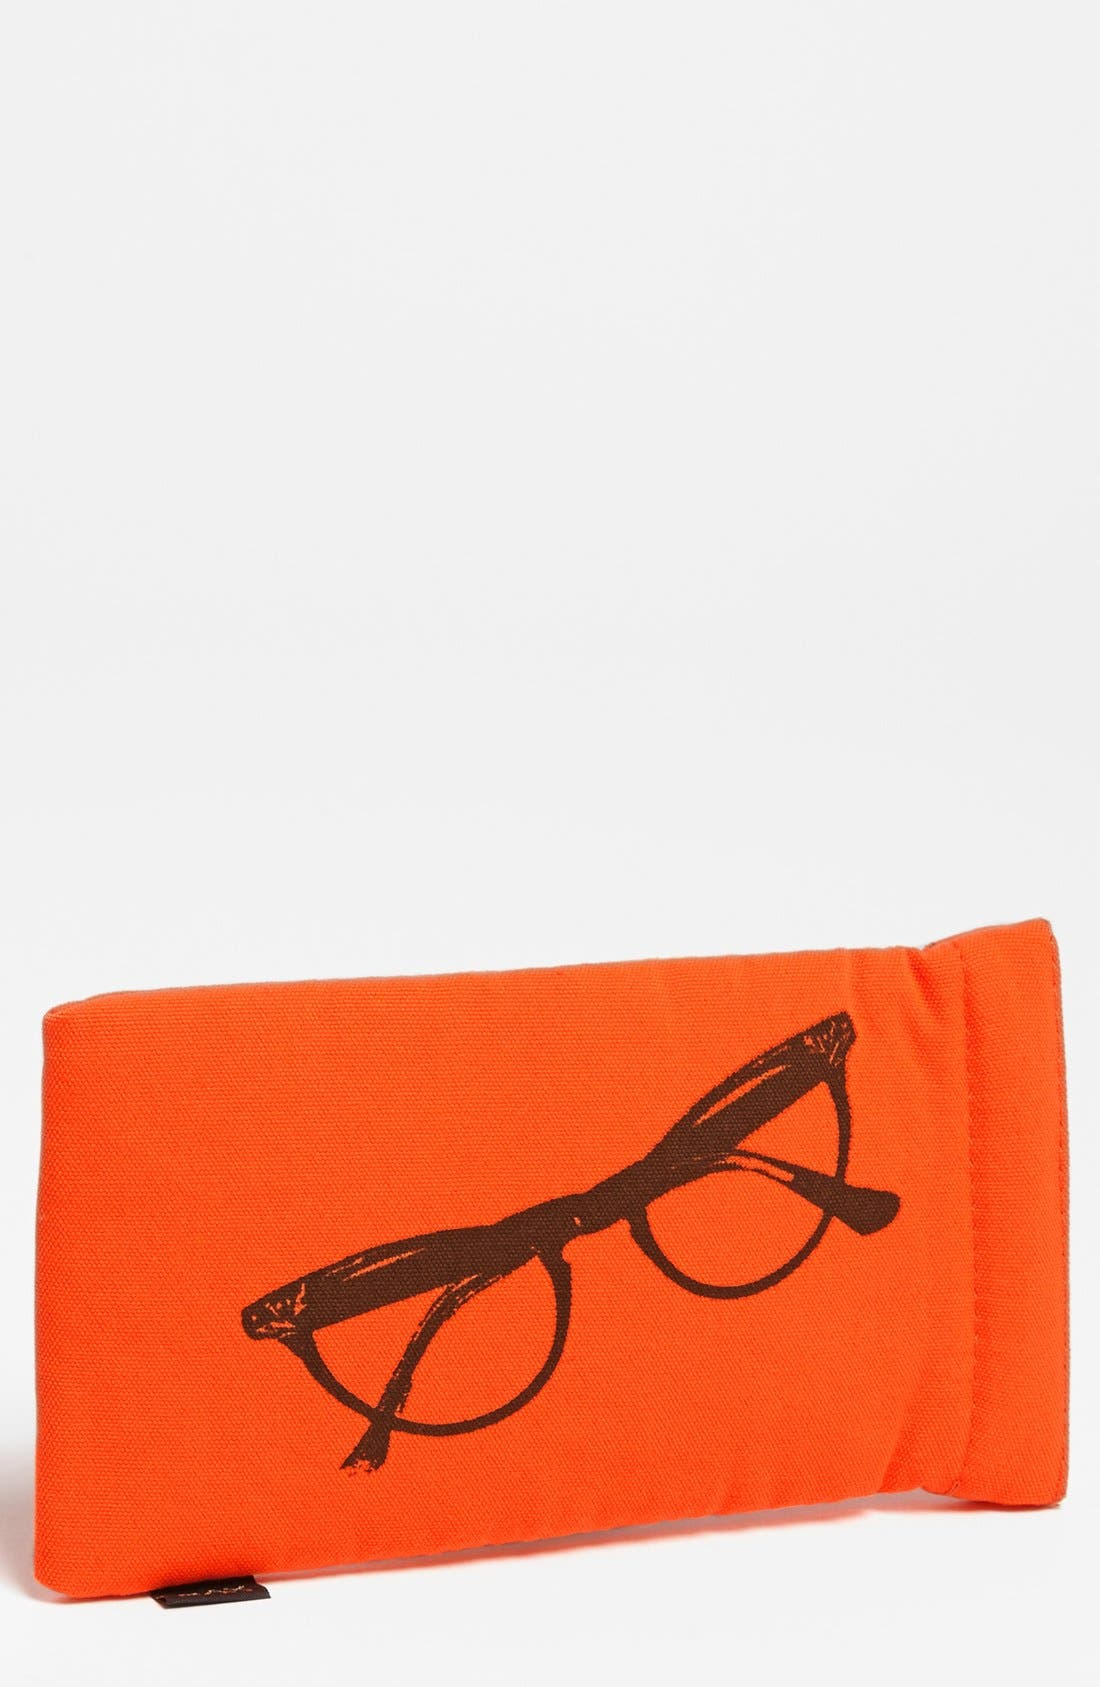 Alternate Image 1 Selected - Sax Eyewear Accessory Soft Sunglasses Case